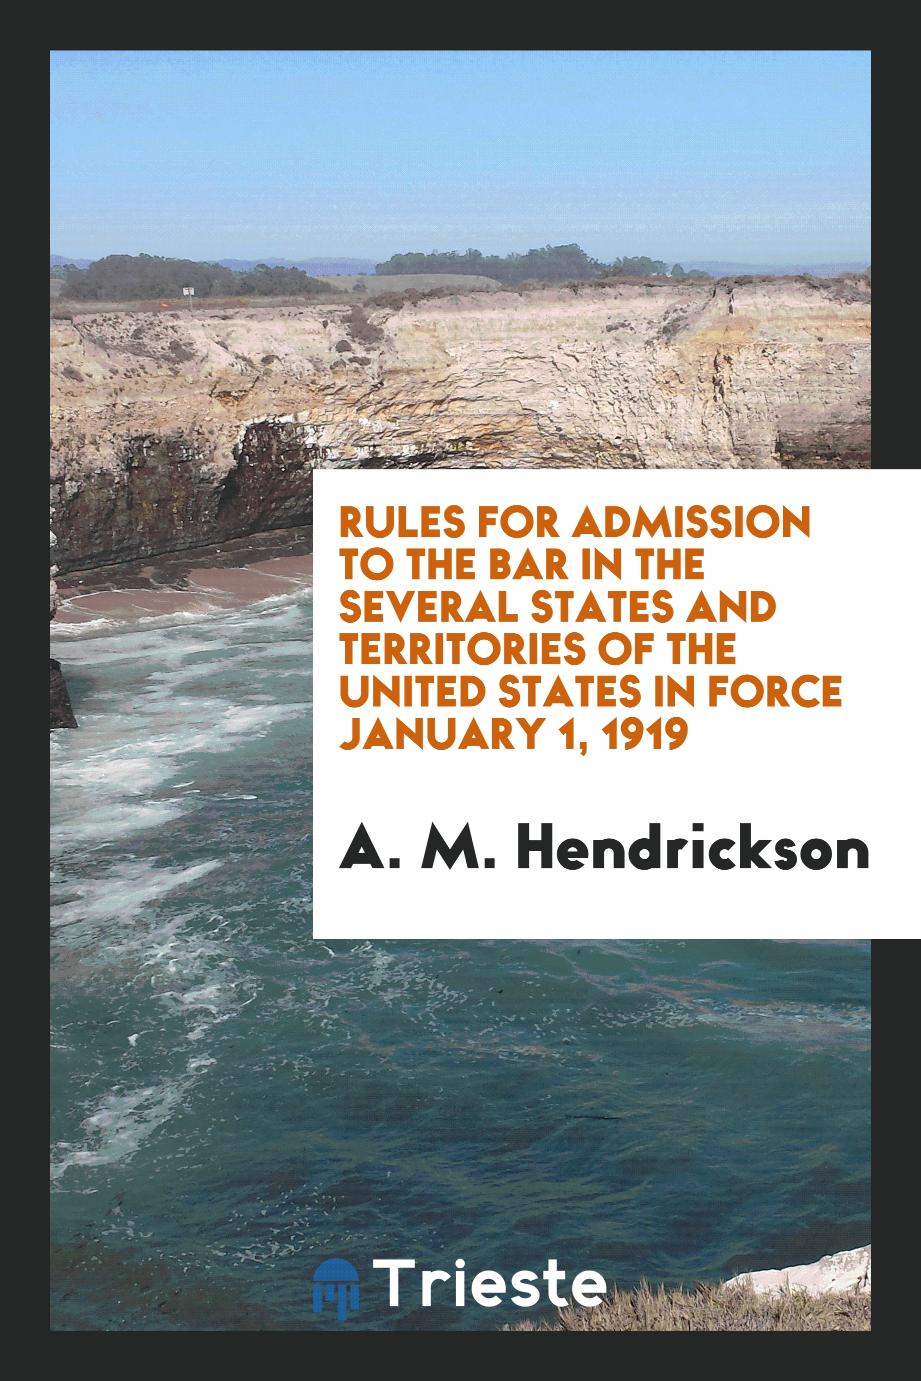 Rules for Admission to the Bar in the Several States and Territories of the United States in Force January 1, 1919